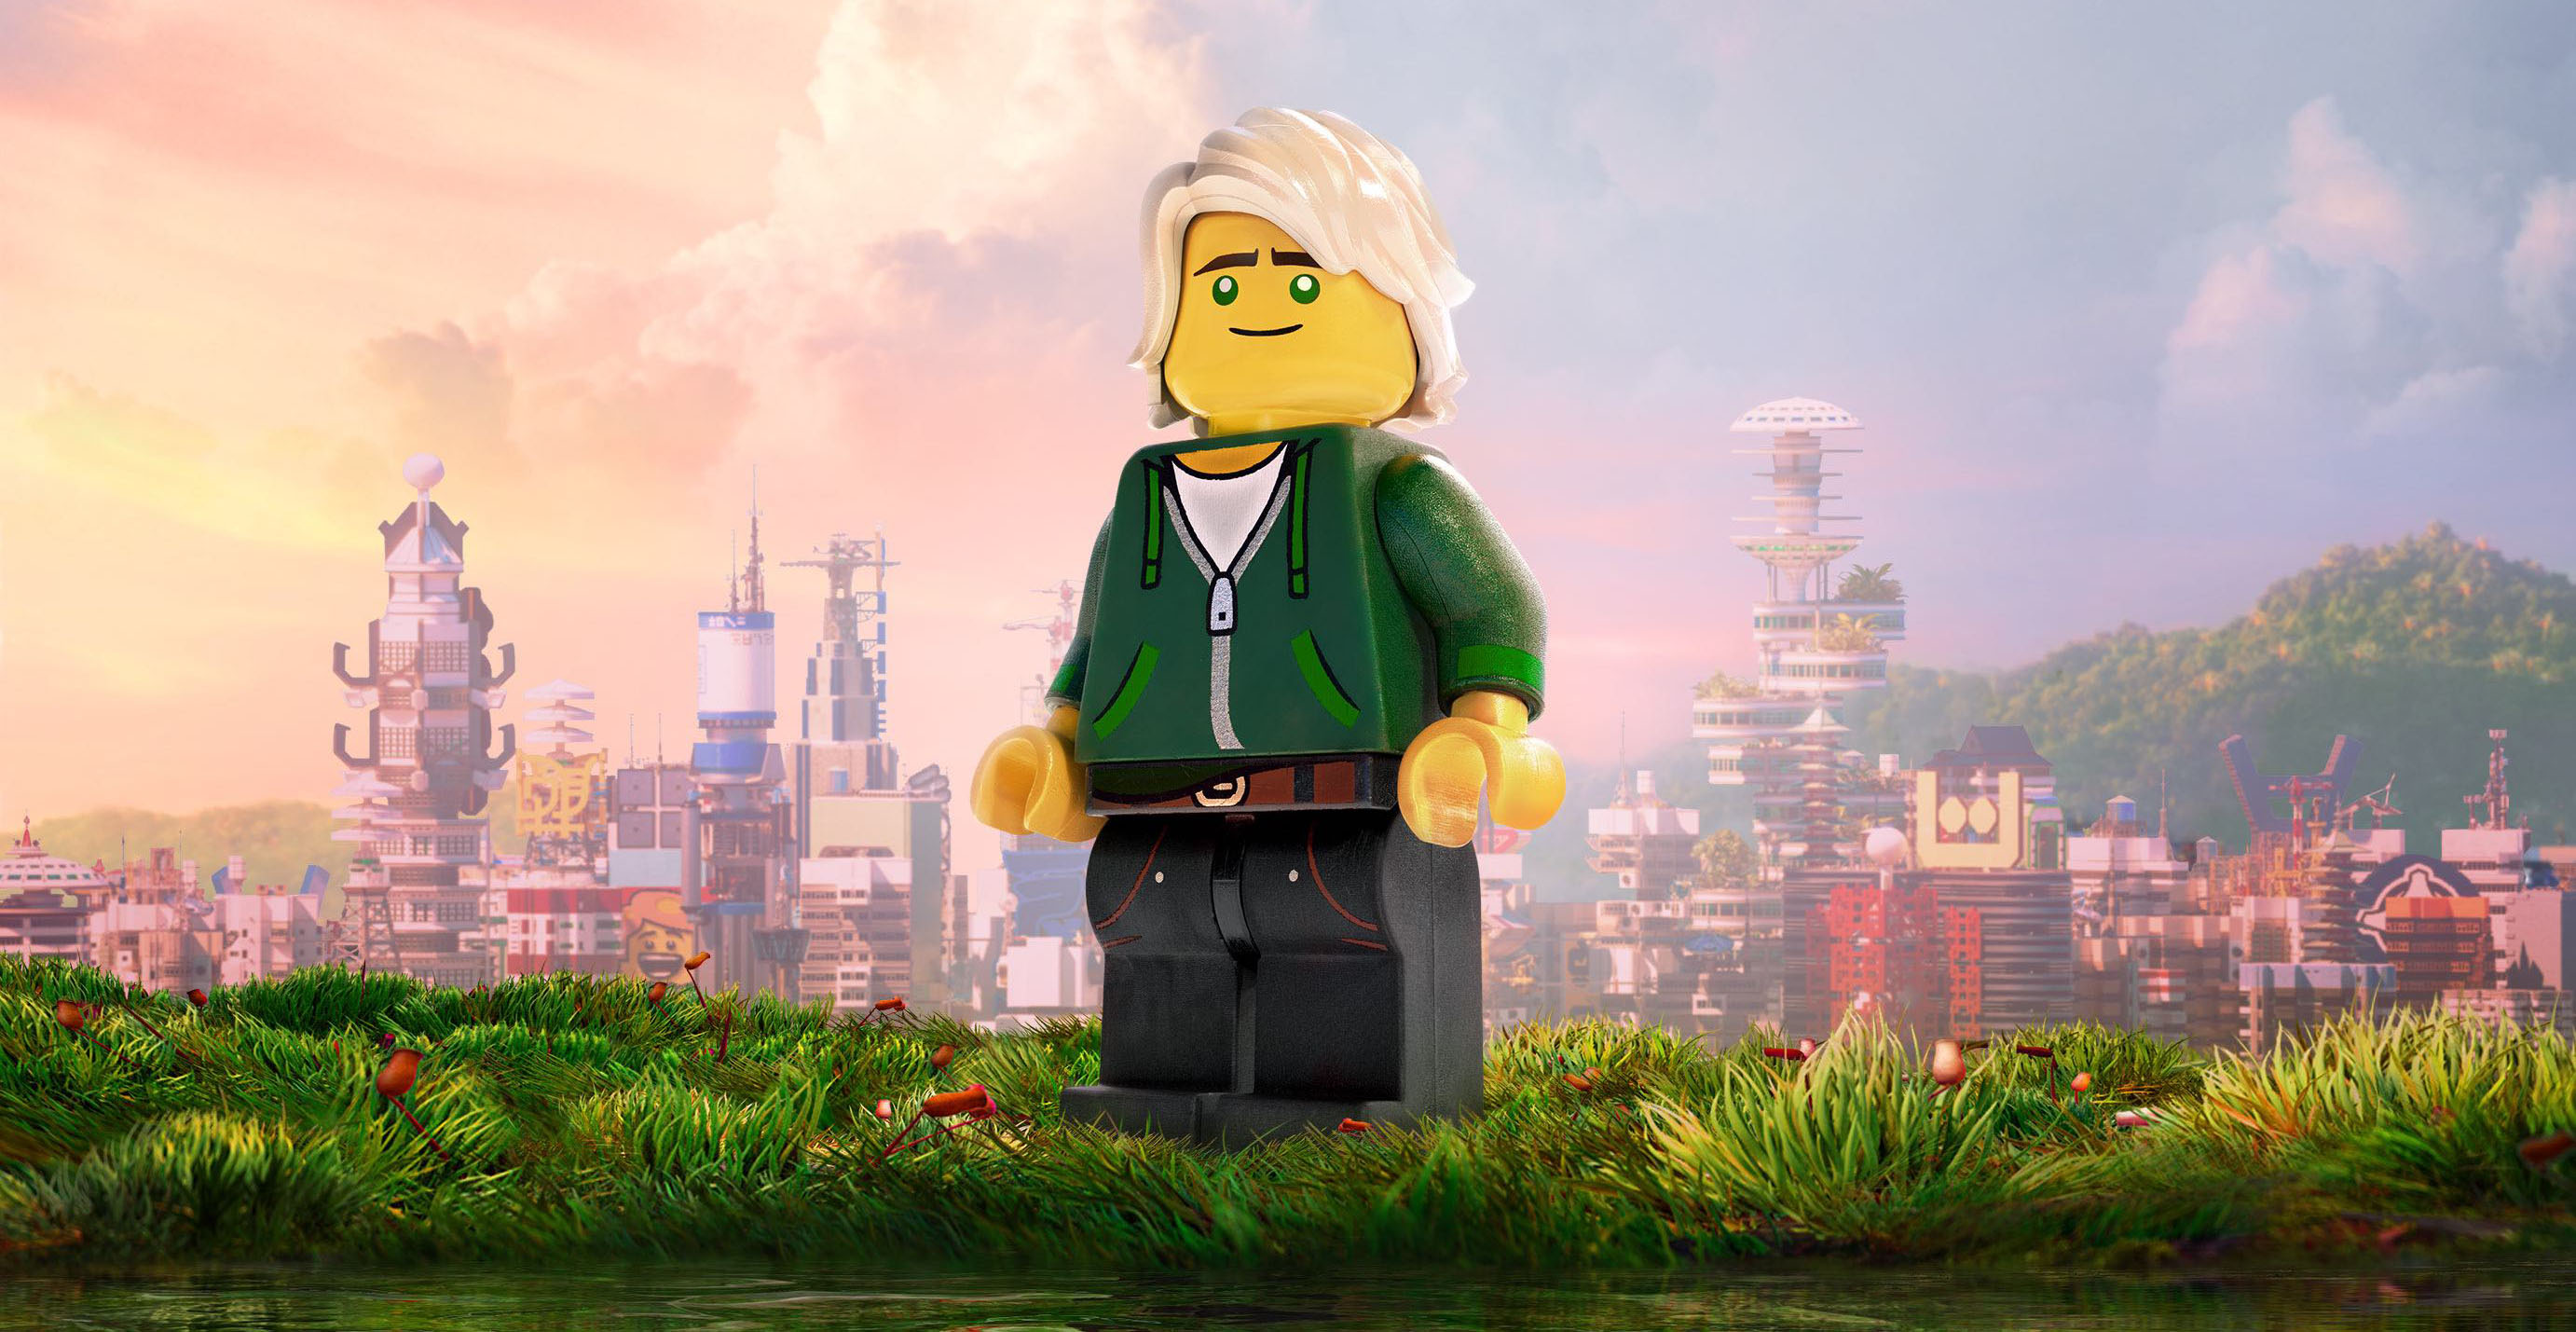 The lego ninjago movie wallpapers images backgrounds photos and lloyd garmadon the lego ninjago movie lloyd garmadon the lego ninjago movie wallpaper voltagebd Image collections